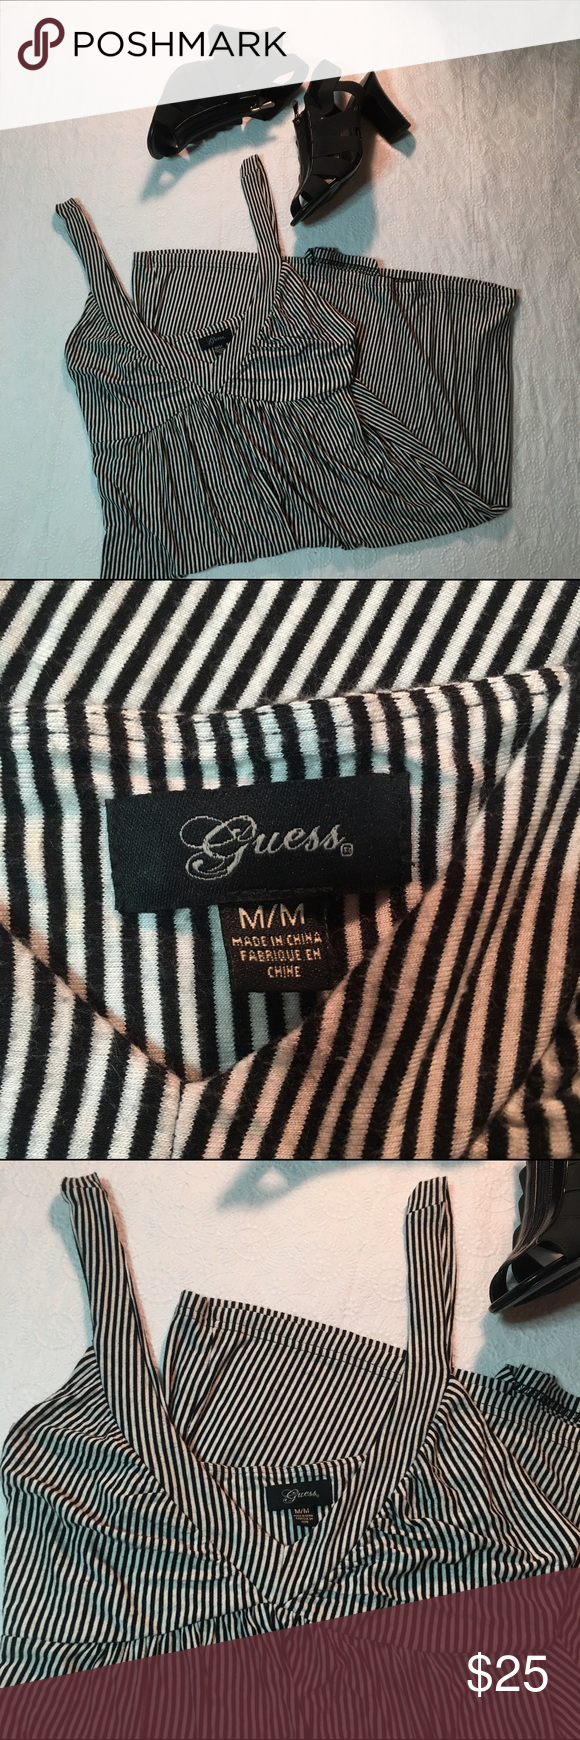 Black and white striped Guess dress size medium Gorgeous stripes on an even more gorgeous dress? Who would've GUESSed? This dress is absolutely gorgeous for summer or spring or any season really! With heels or boots this is so cute! VERY gently used in great condition! Size medium! Fits true to size! Perfect CHRISTMAS present!! offers accepted! 😍😍 Guess Dresses